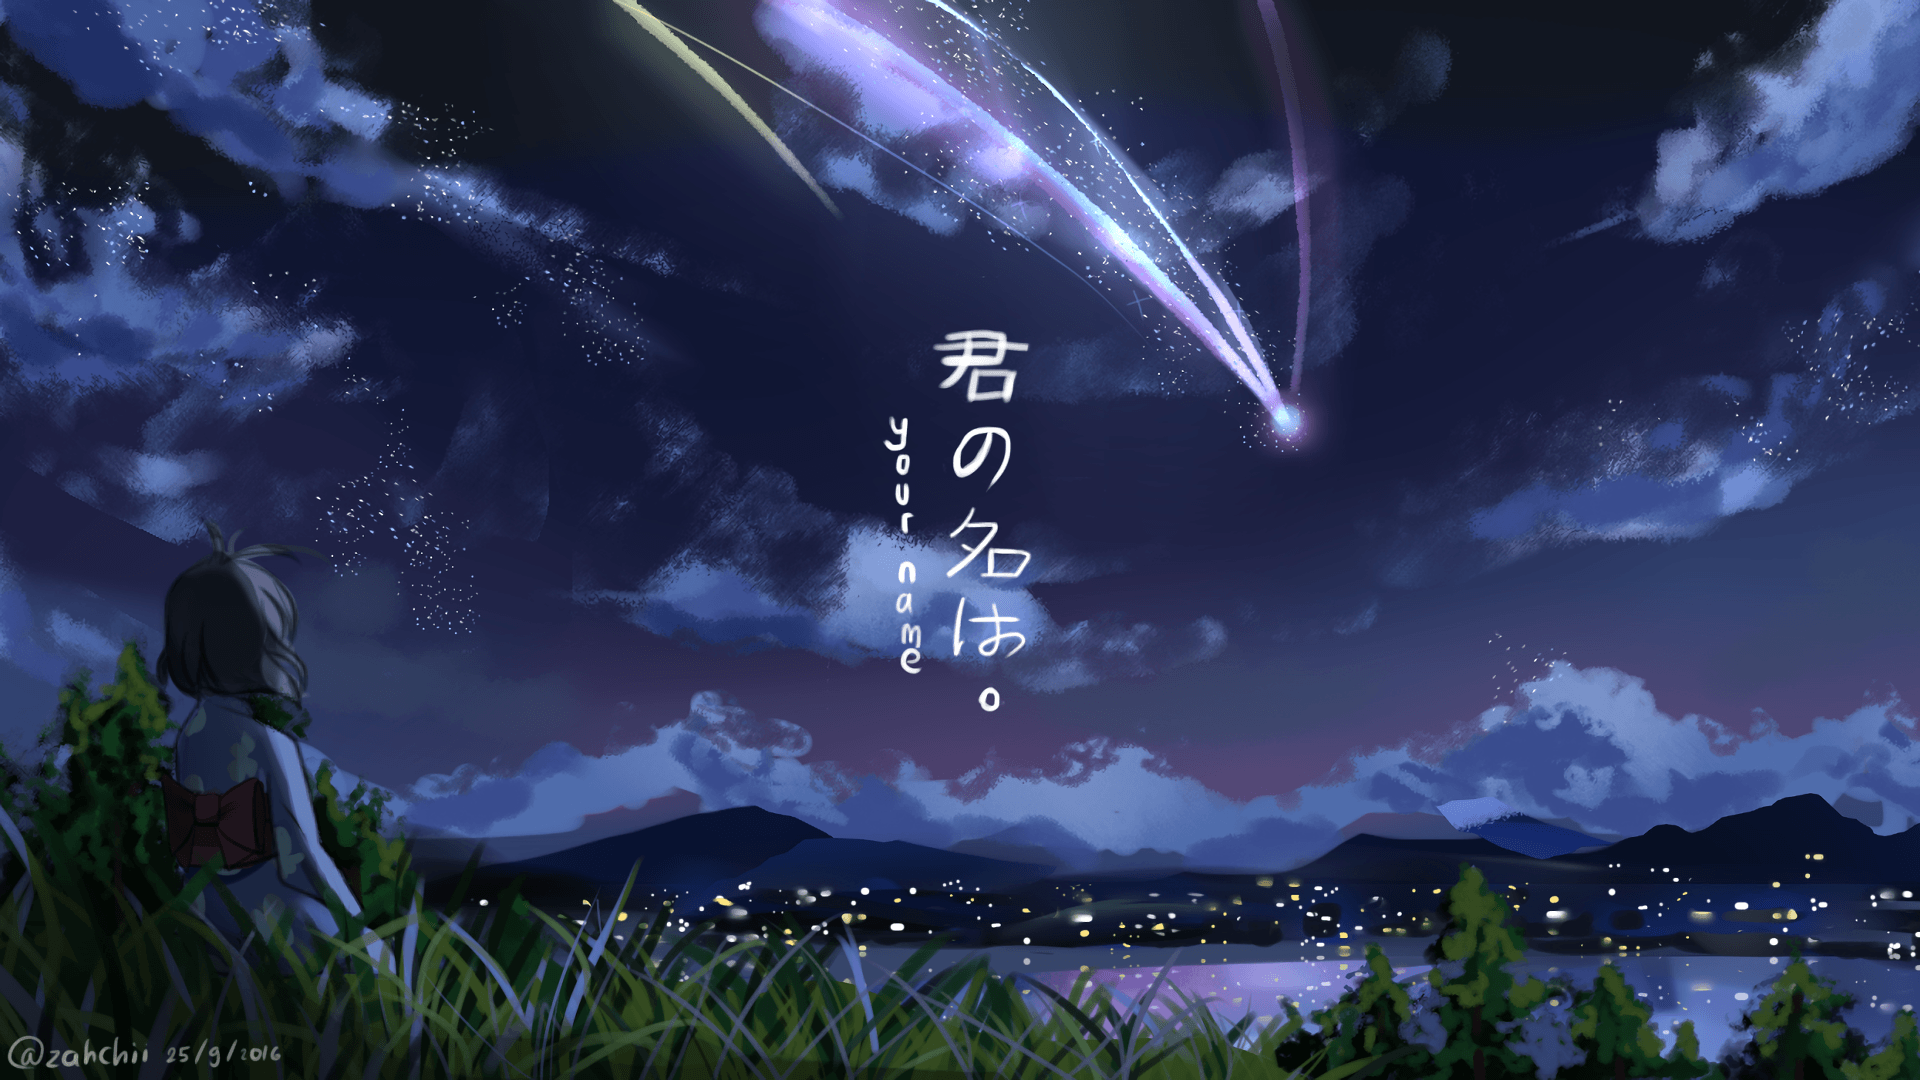 Your Name Anime Wallpapers   Top Your Name Anime Backgrounds 1920x1080